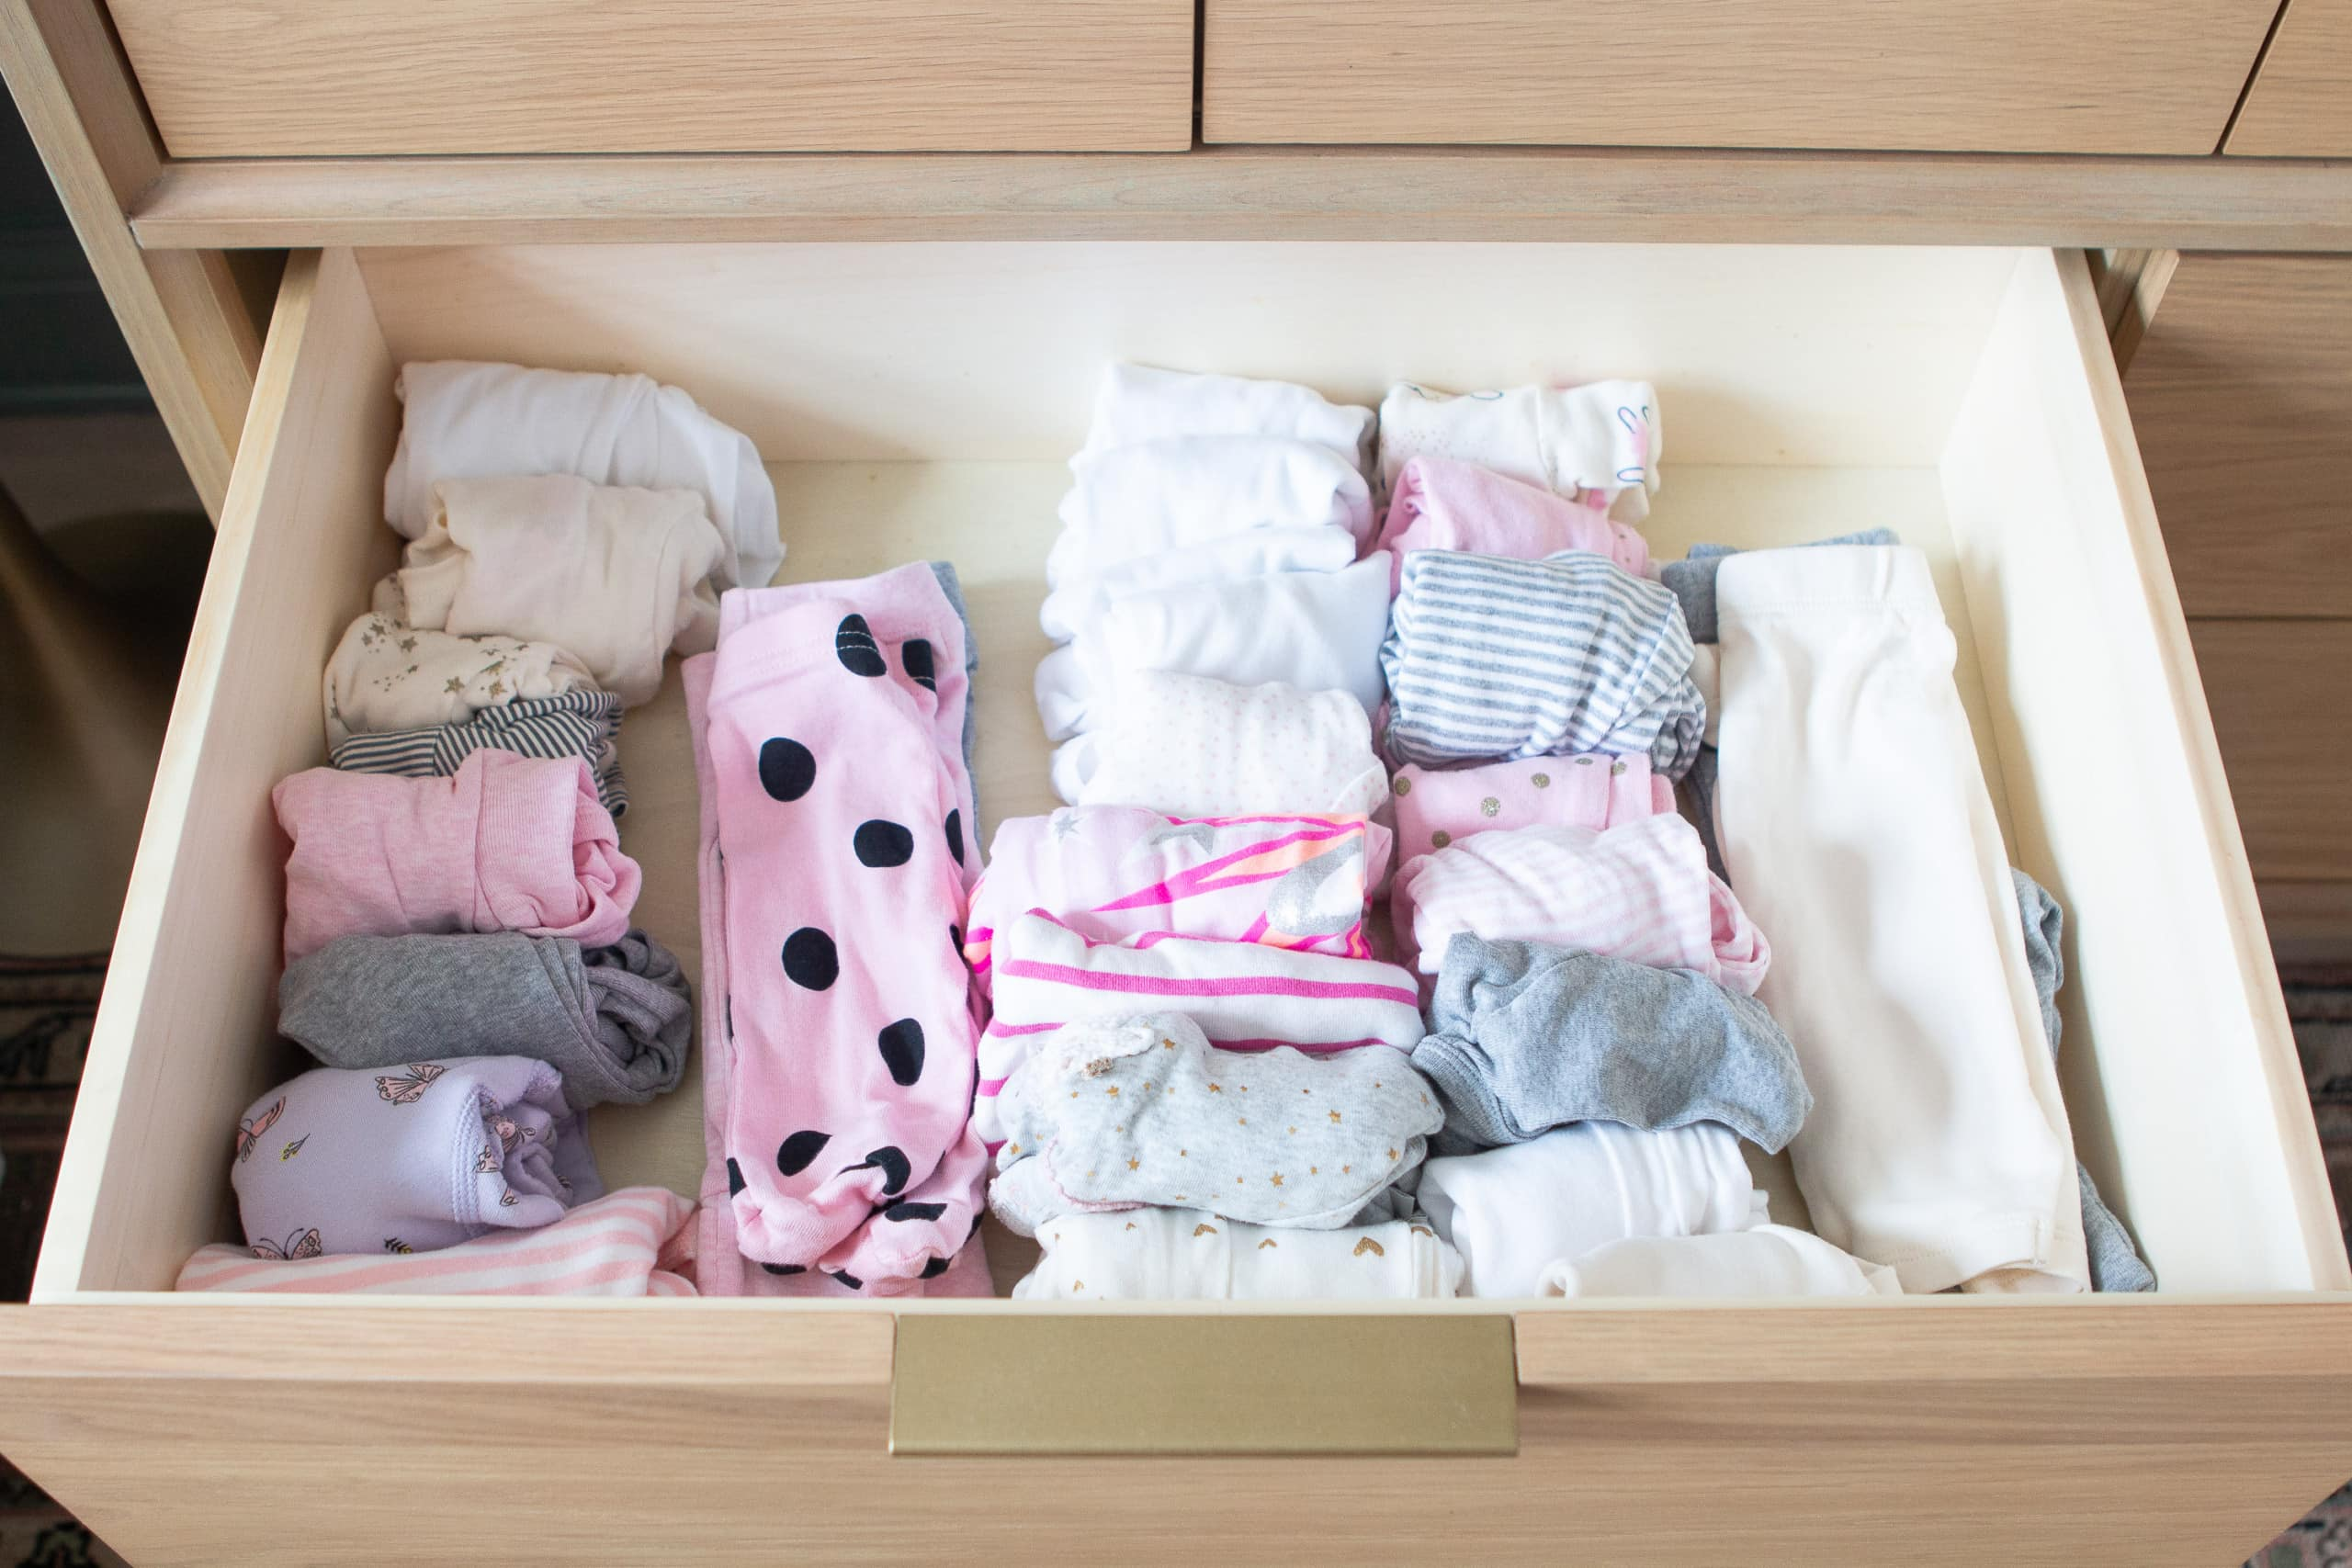 Organizing nursery drawers